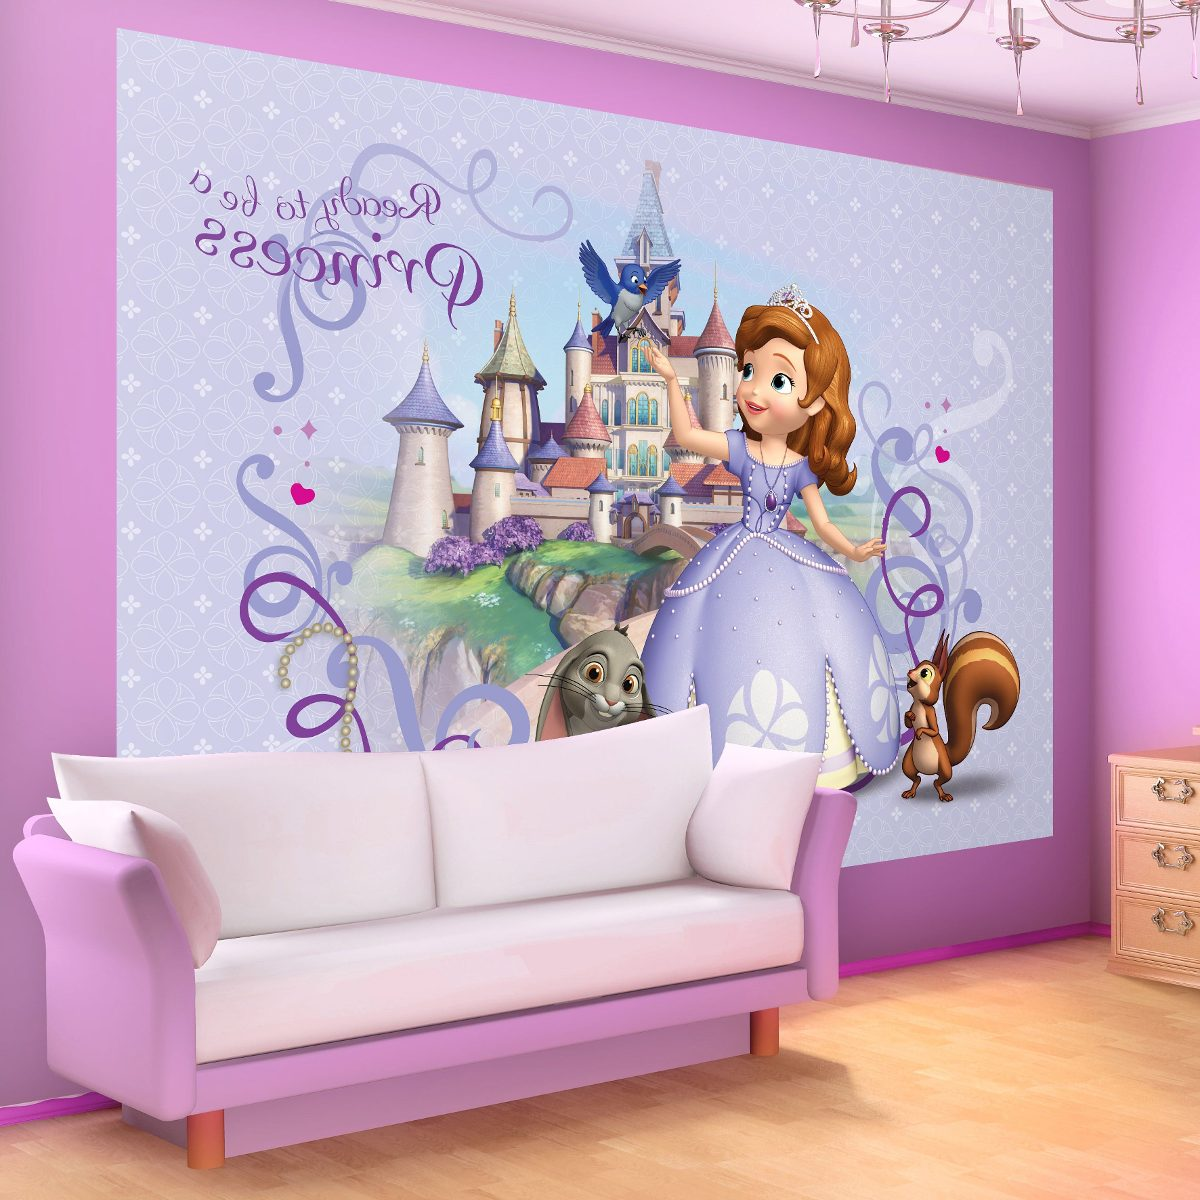 Murales decorativos infantiles princesas viniles hilocolor for Murales para decoracion